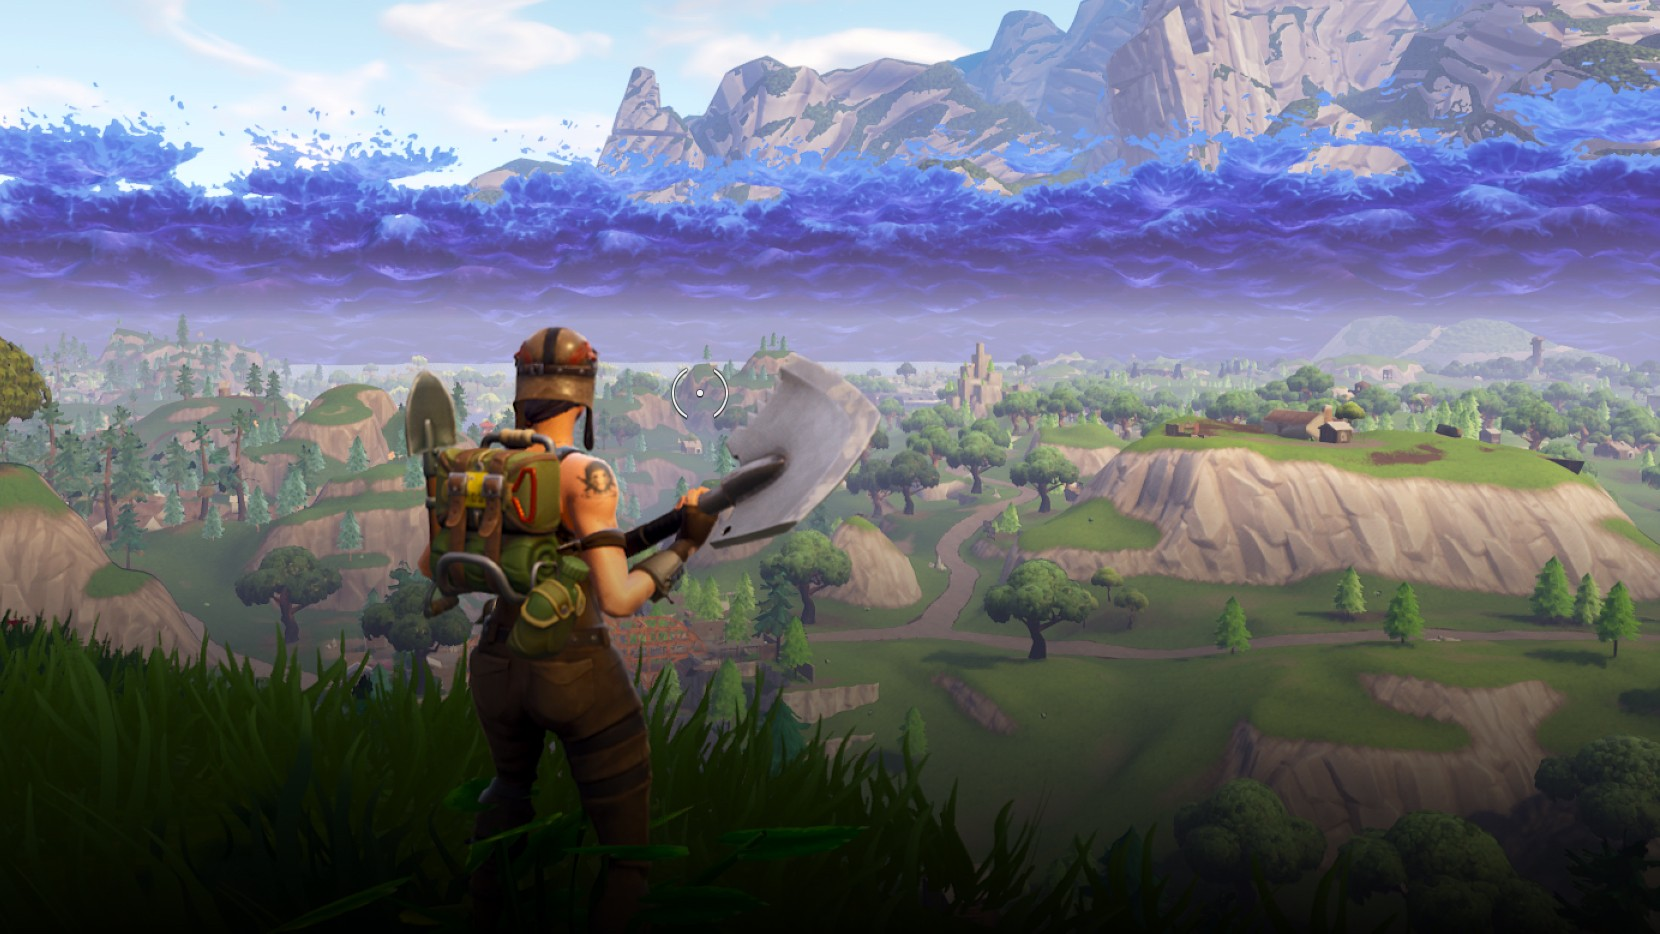 Fortnite Help Epic Games epic games invested $100,000,000 into fortnite esports: here